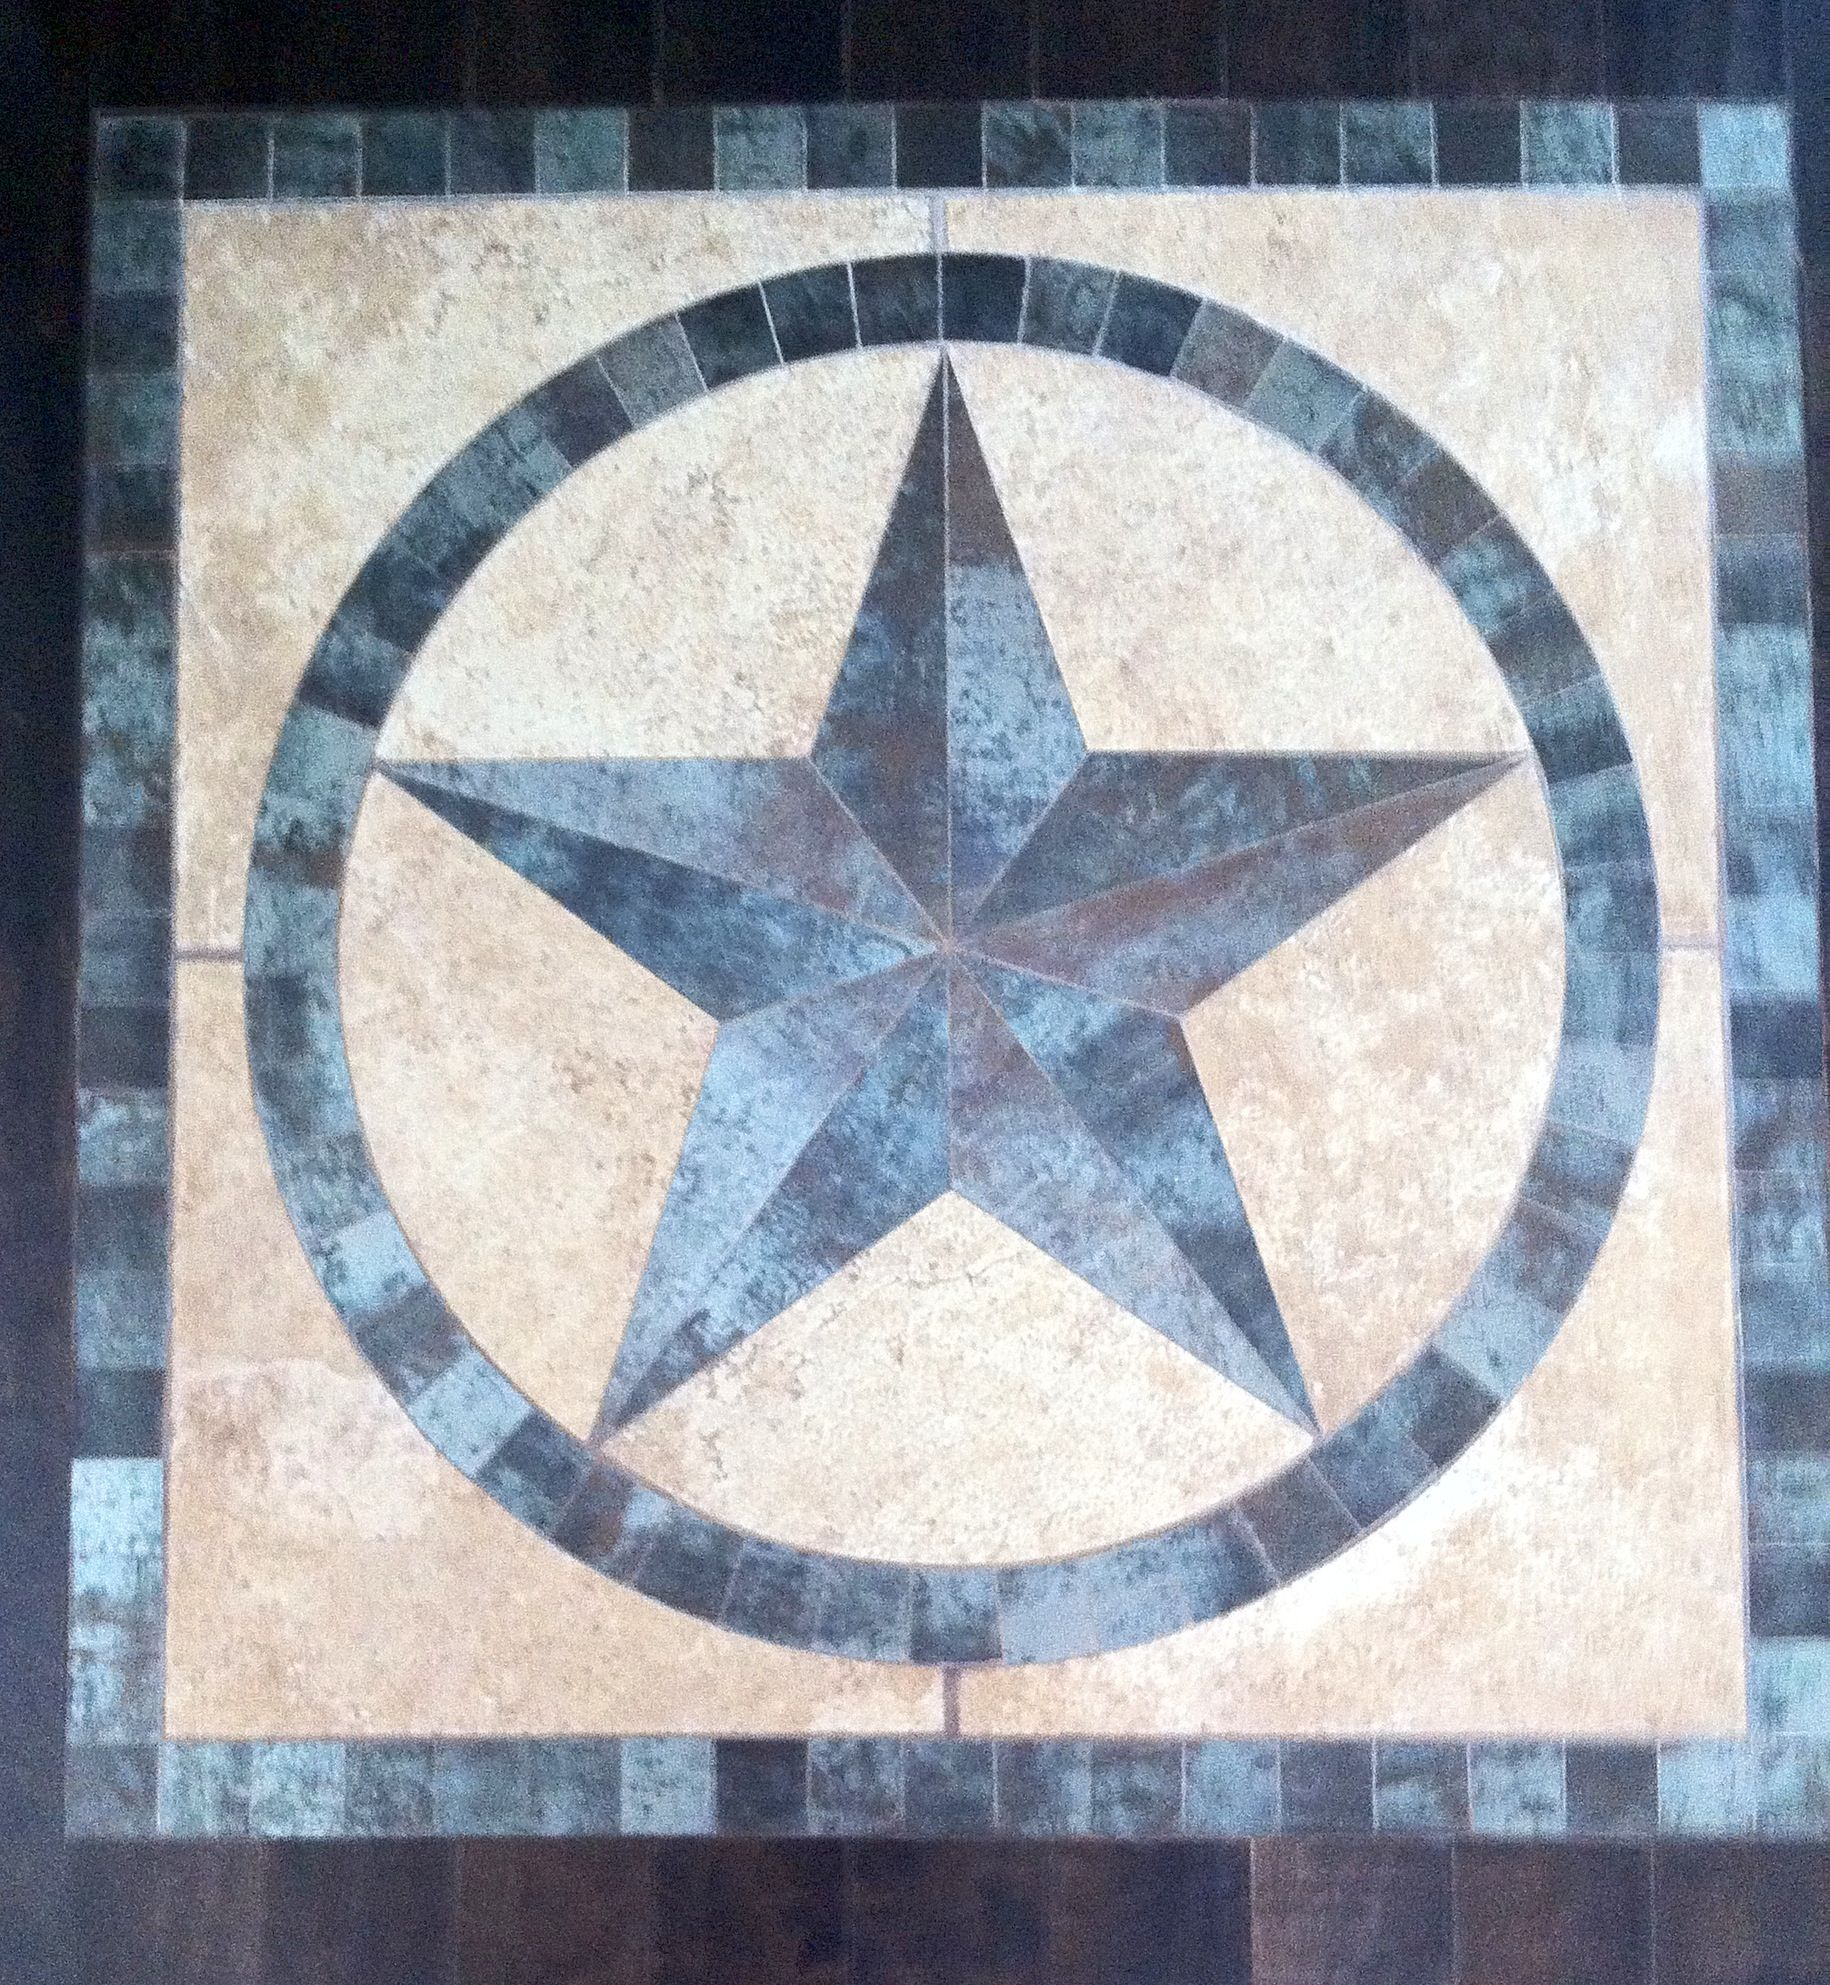 36 Framed Texas Star Medallion Of Porcelain And Travertine For Wood Floor